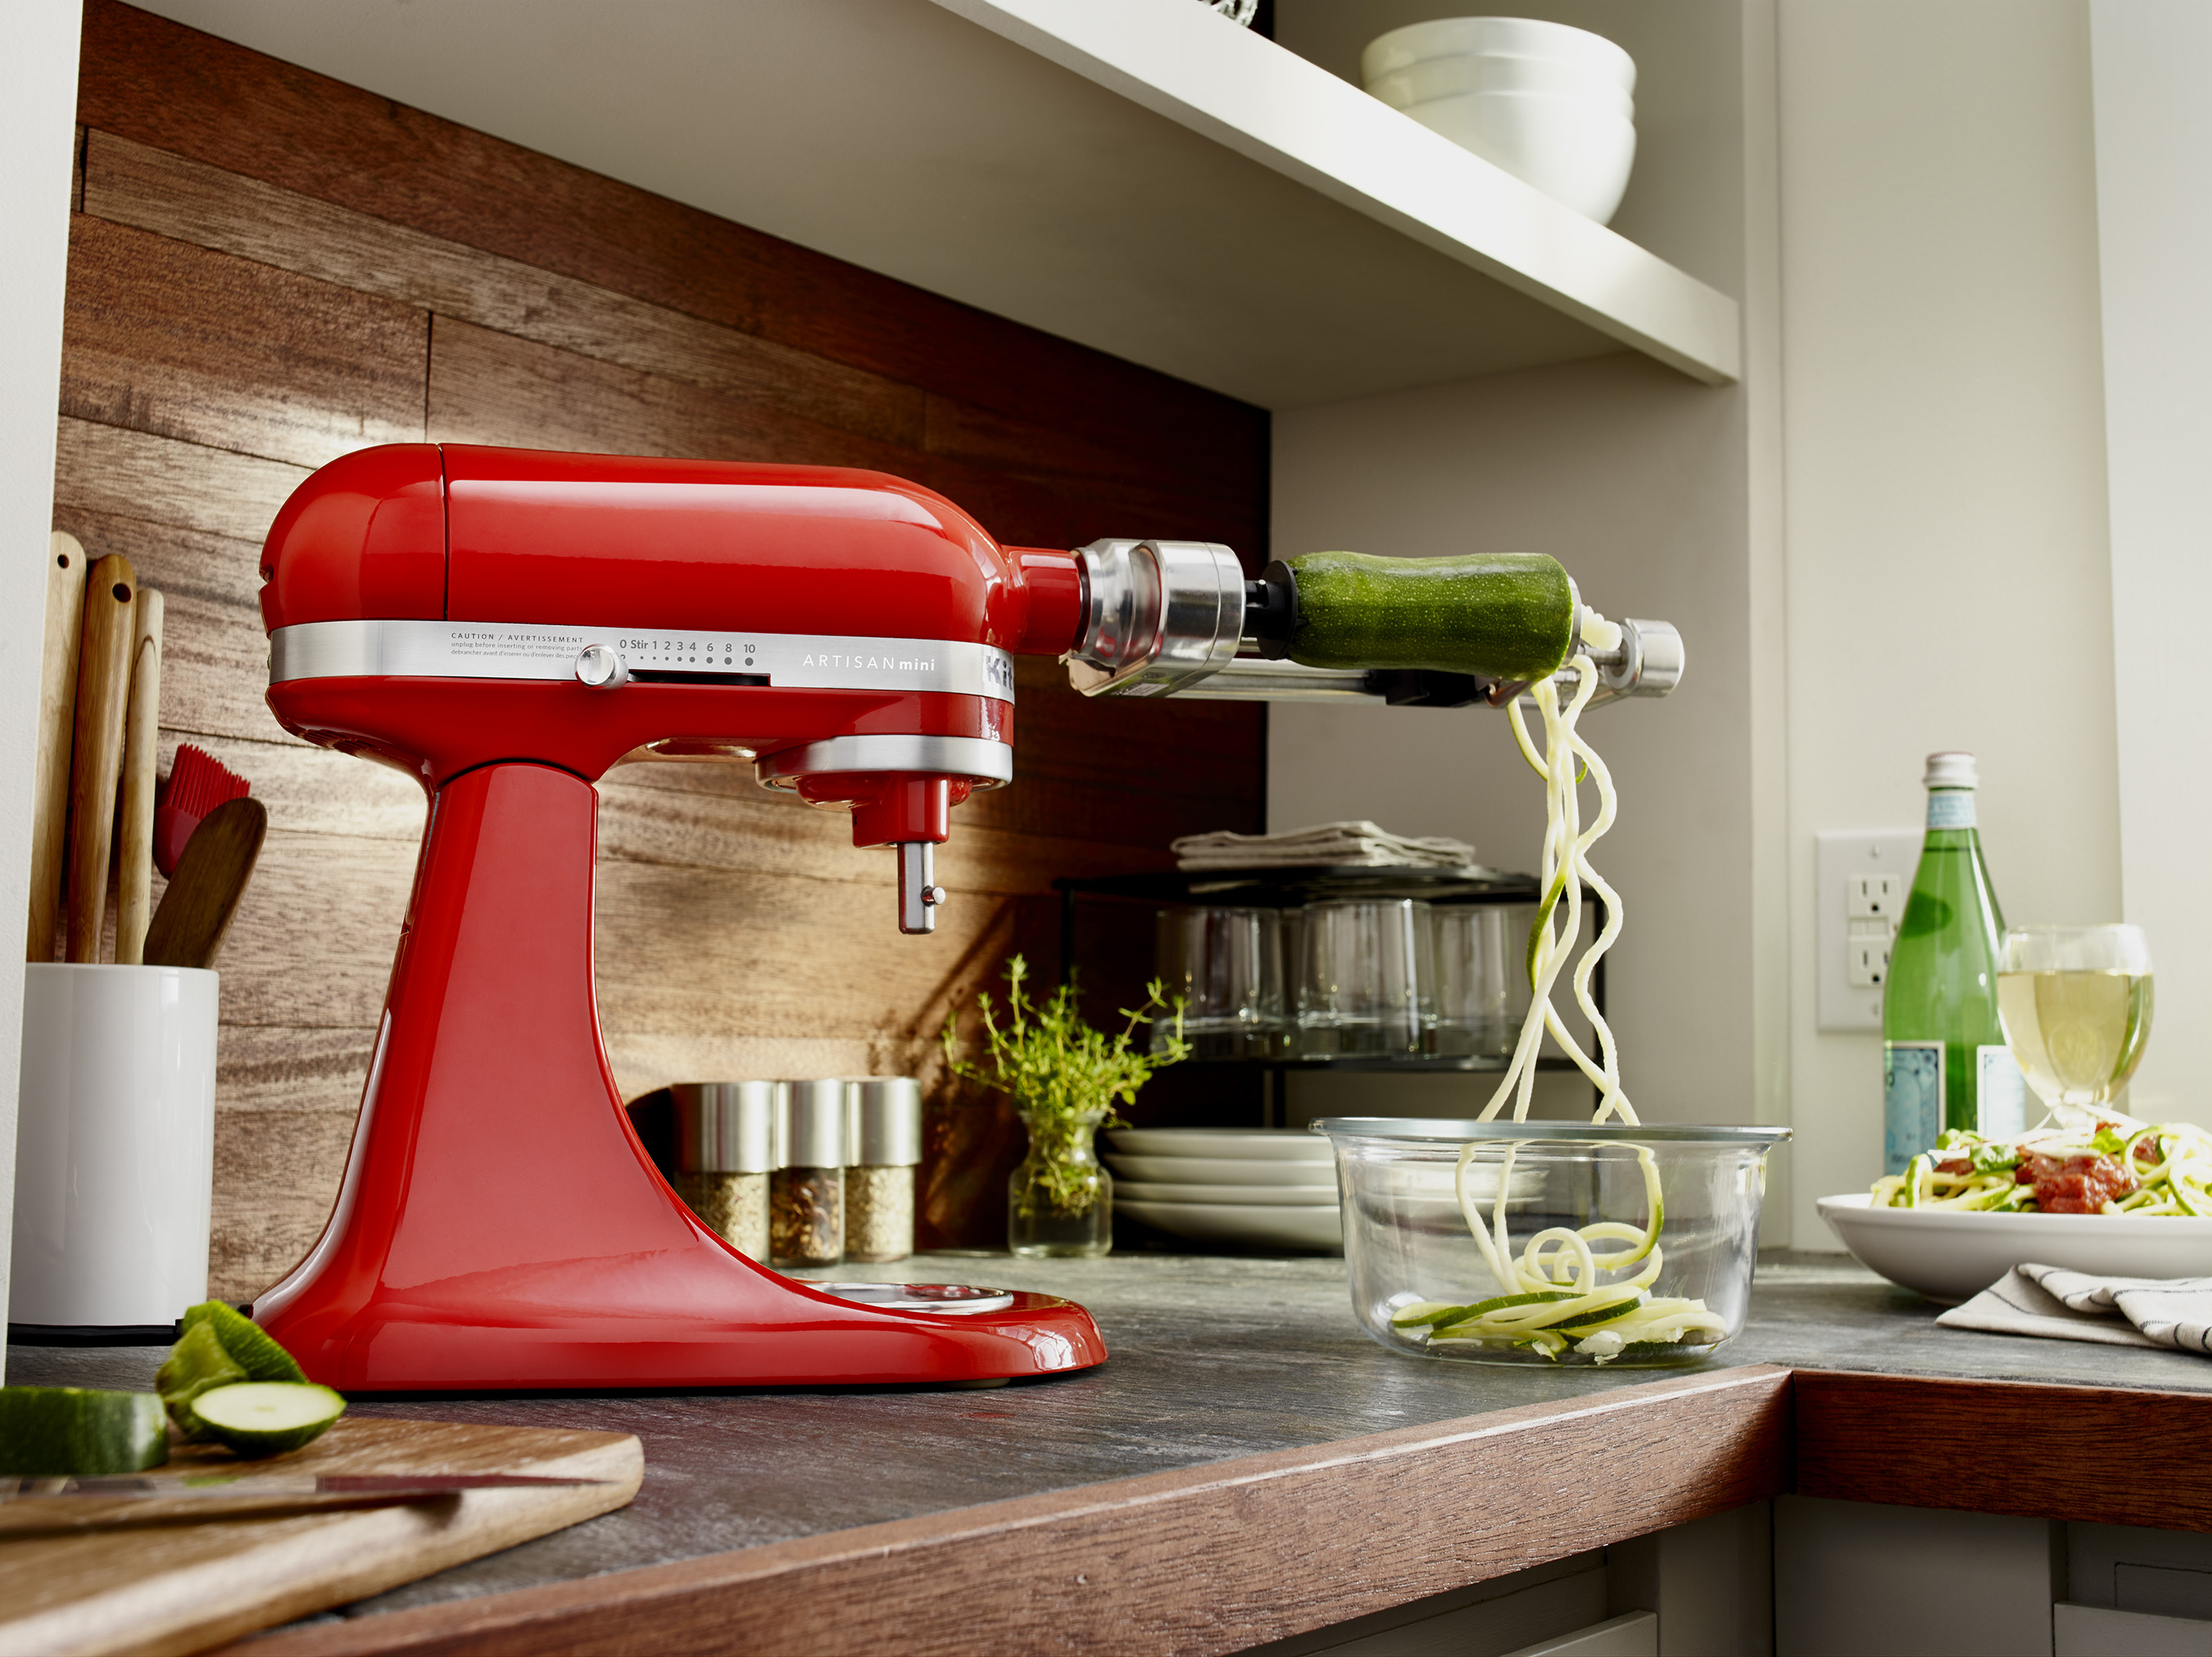 bimby kitchen robot towel bar cookers aid vs spicynote